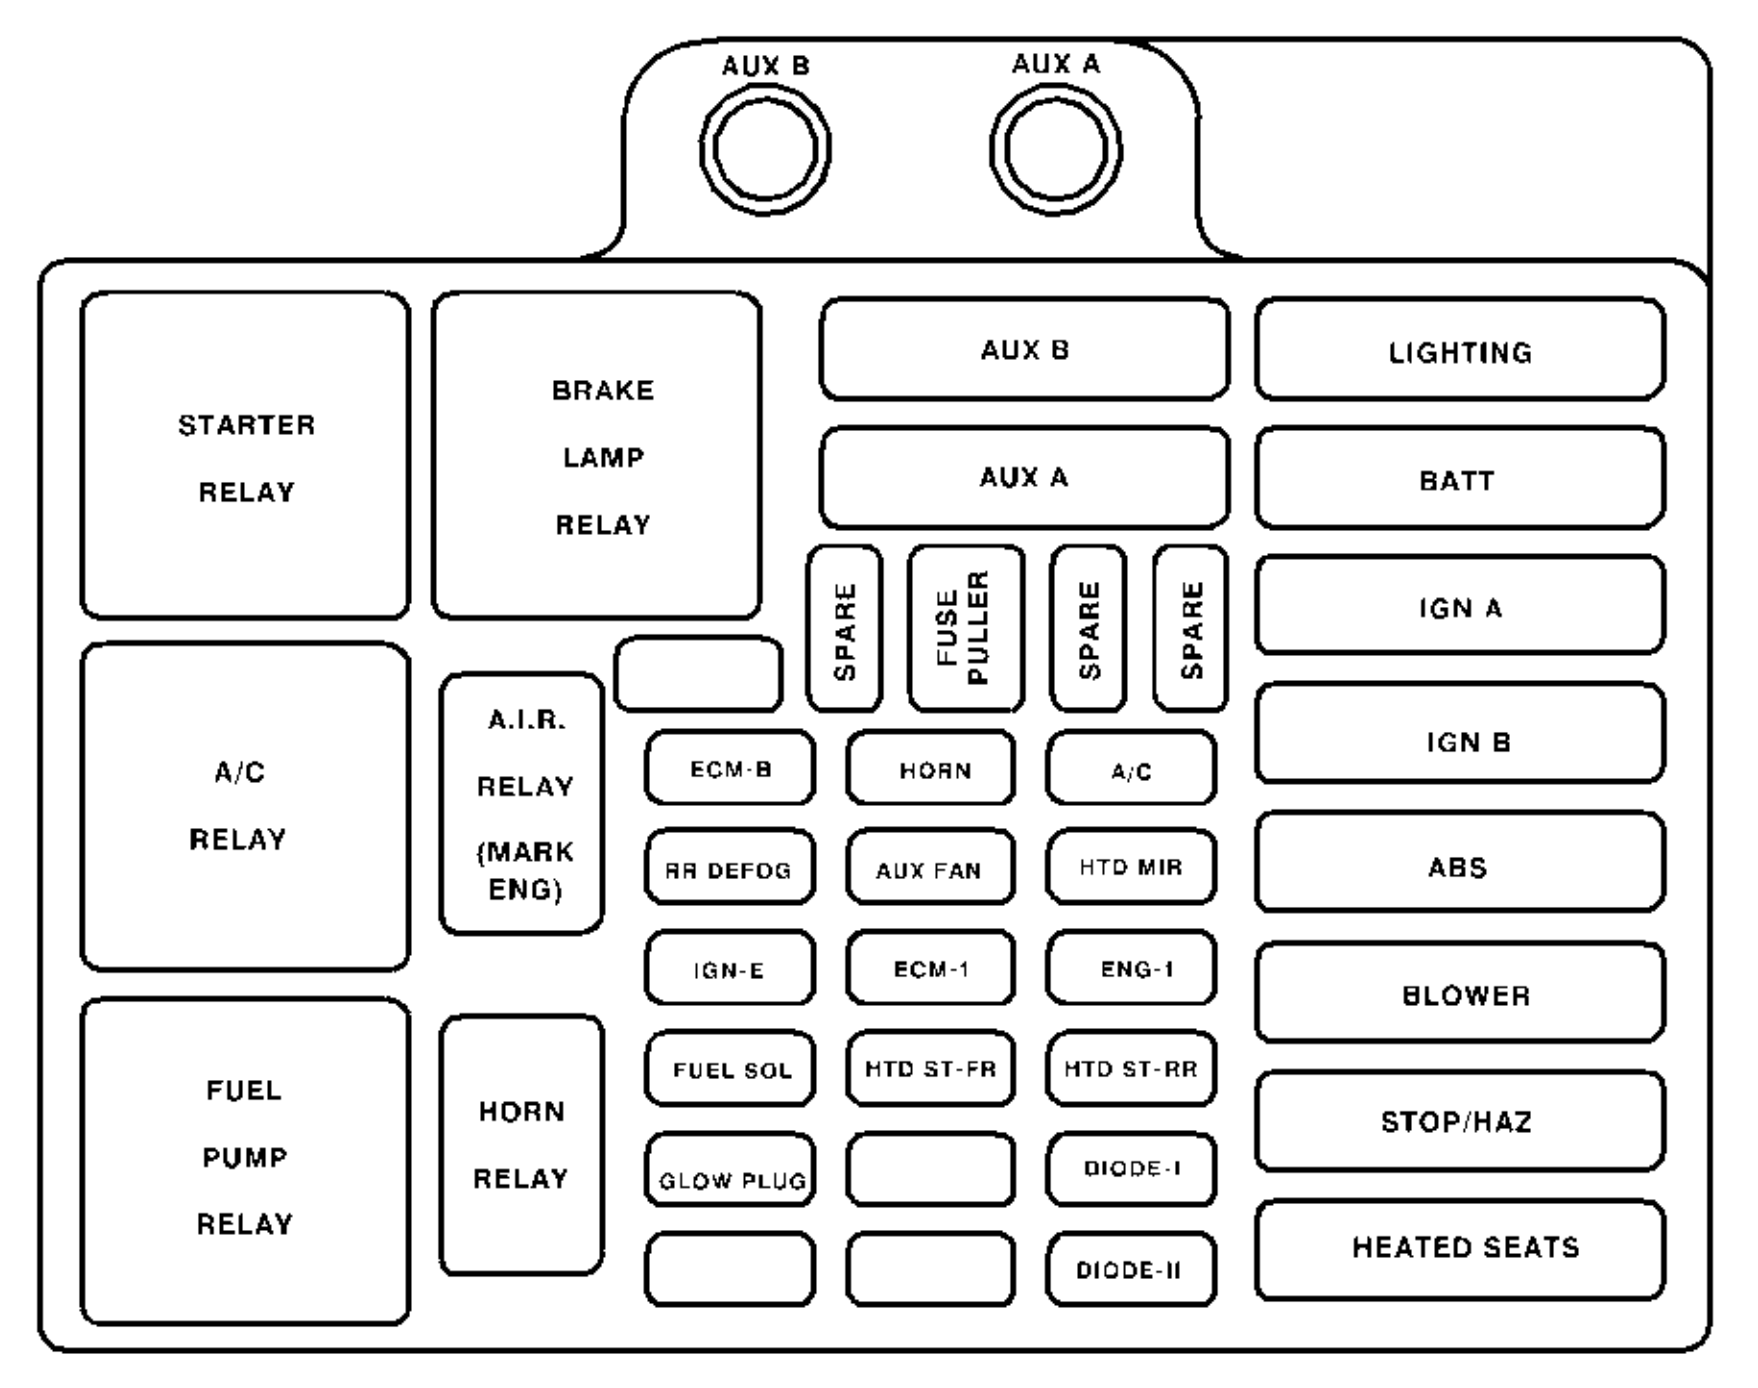 hight resolution of 2000 chevy tahoe fuse box wiring diagram details 2000 chevy tahoe fuse diagram 2000 chevy tahoe